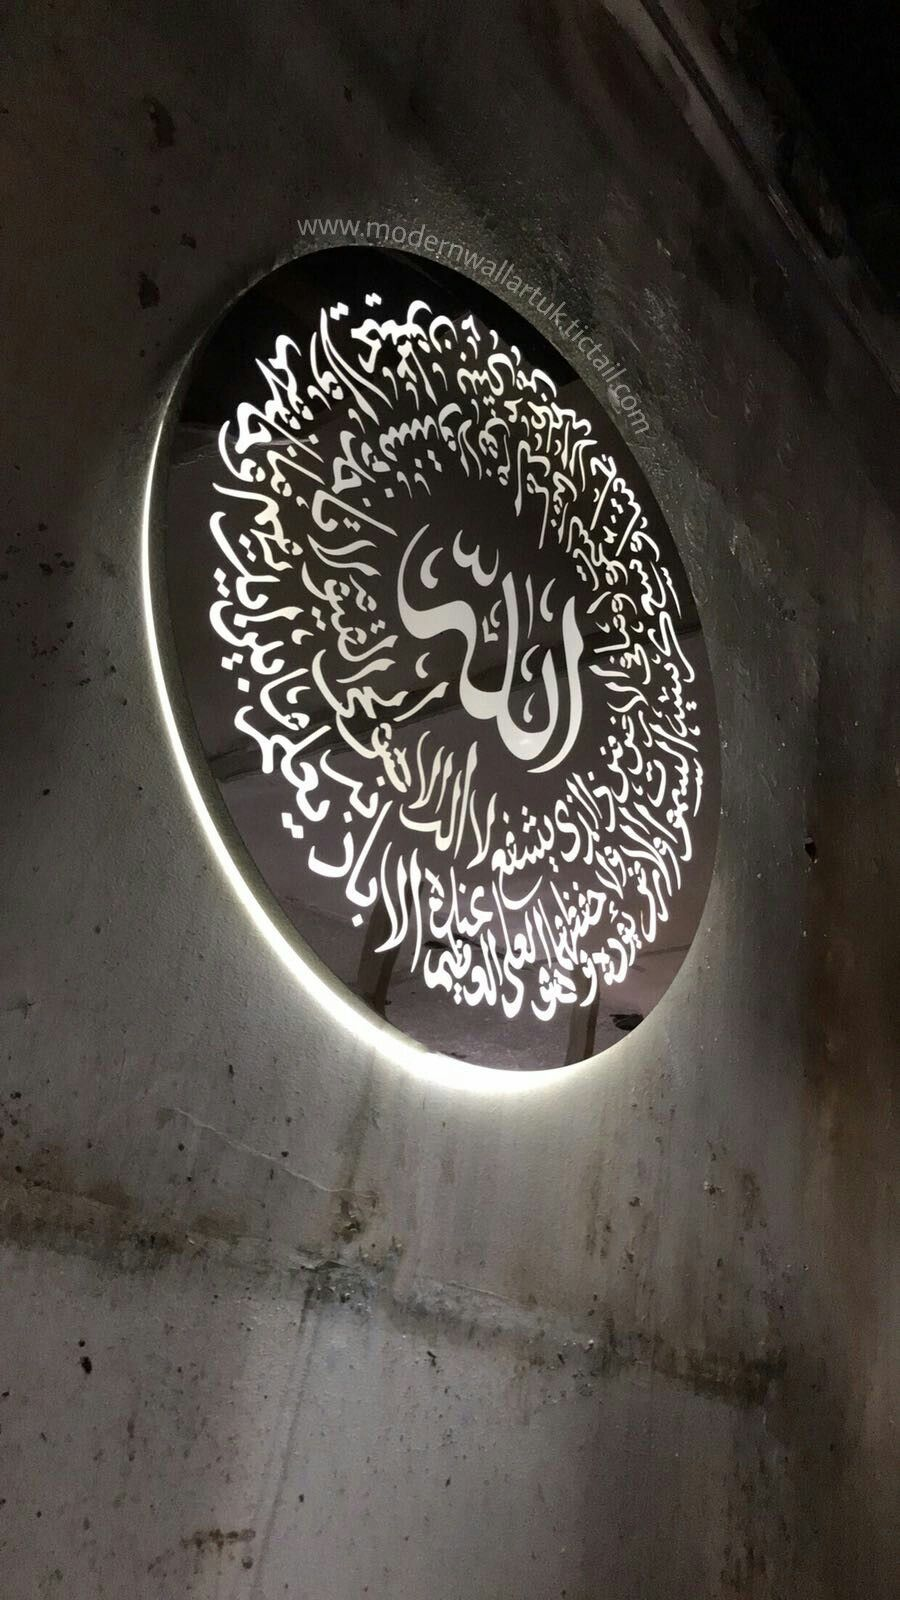 Led Four Quls Medallion Wall Art Designed In A Large Circular Stainless Steel That Beautifully Sits A Little Elevated From The Wall Seni Kaligrafi Ornamen Seni